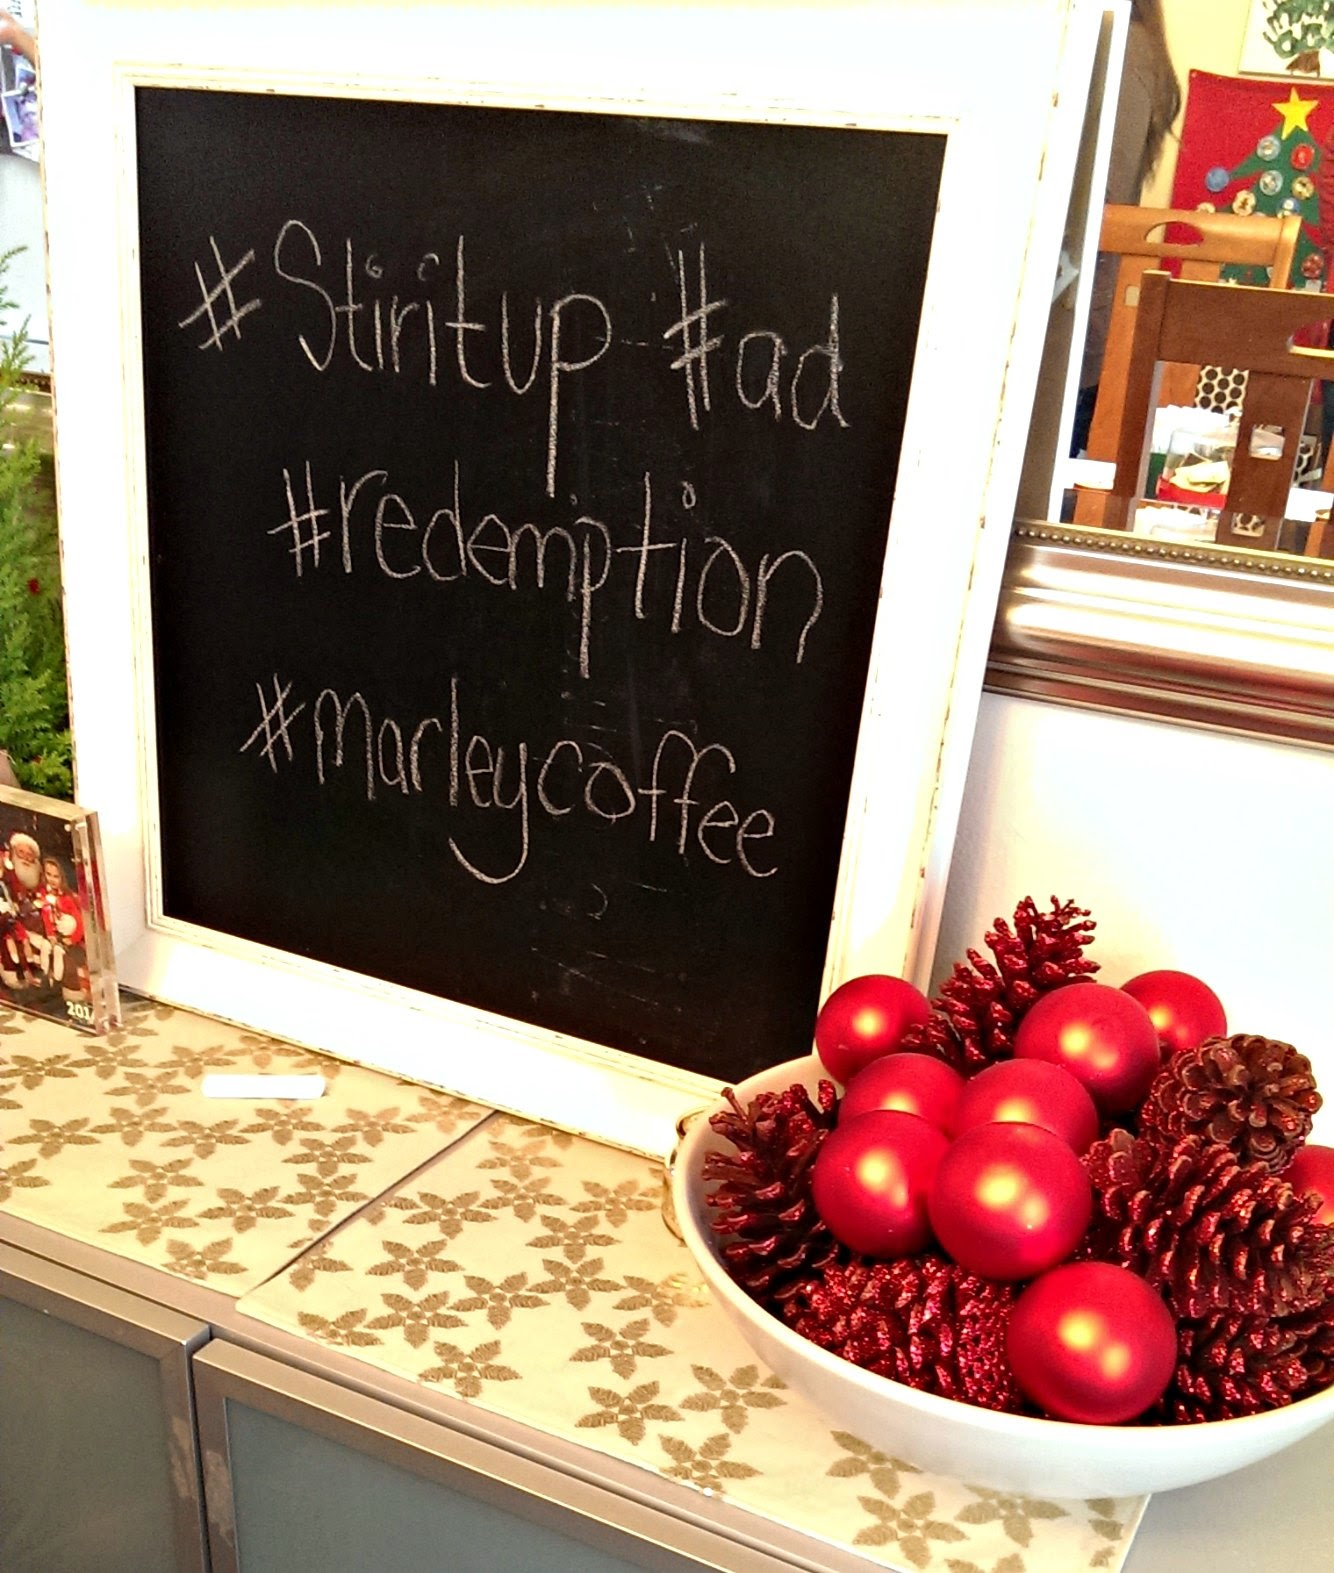 Marley Coffee holiday party